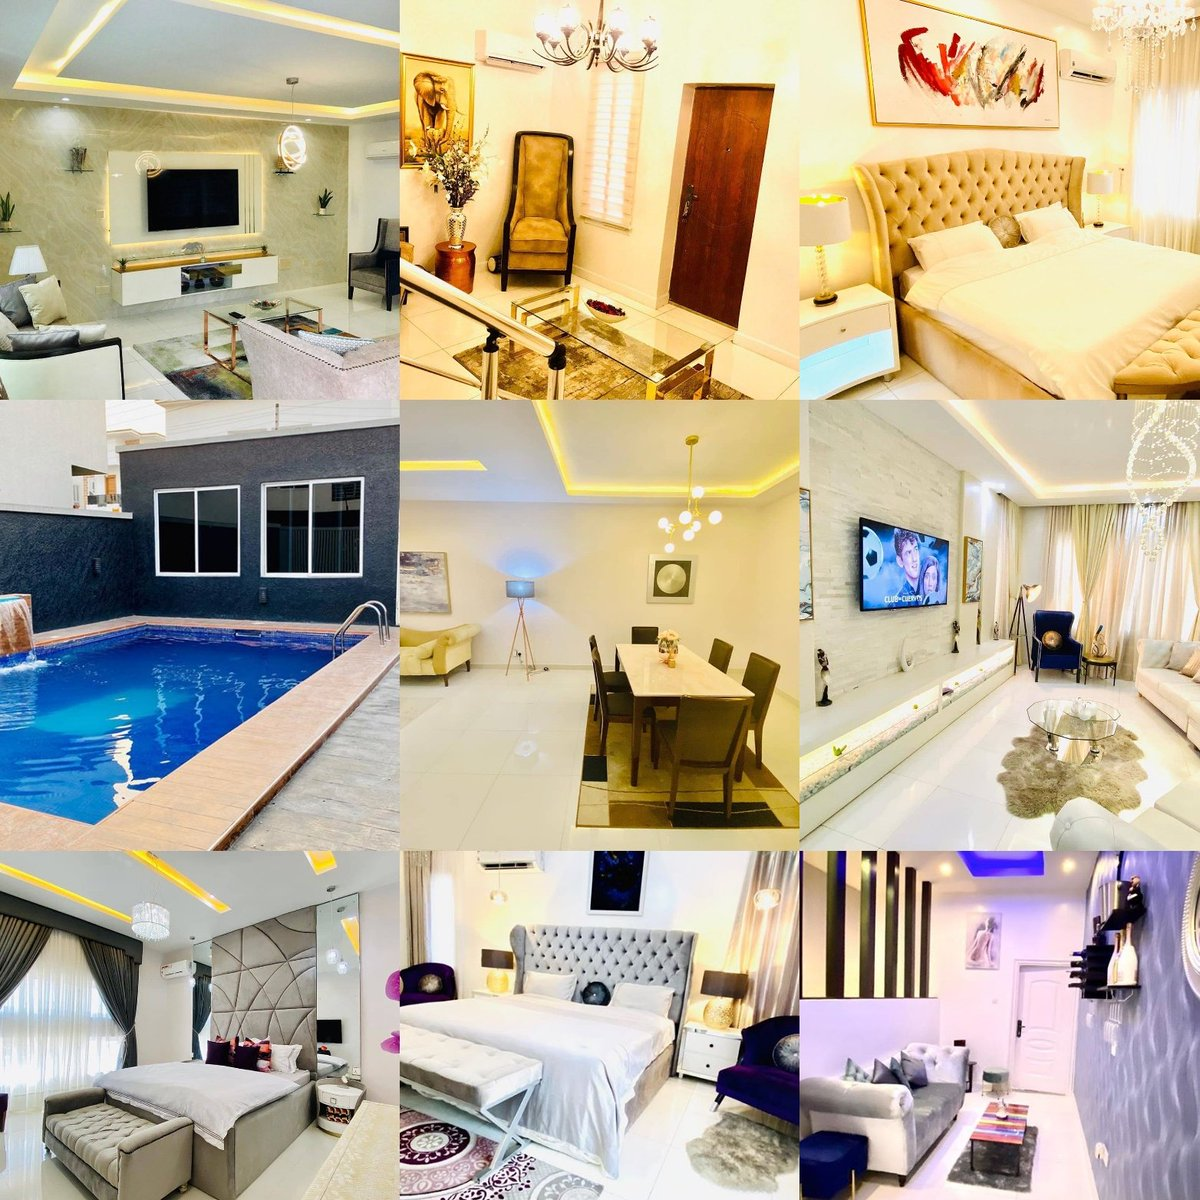 Shortlet home 3 bedroom luxury duplex for your, BIRTHDAY CELEBRATIONS🎂 WEEKEND GETAWAY🏖 GET TOGETHER👭 PHOTOSHOOT📸 VIDEOSHOOT🎥 QUALITY TIME WITH BAE👫 BRIDAL/BABY SHOWER👰  Send a DM or click the link on my bio to see the available dates left for July.. Pls help me retweet🙏🏼 https://t.co/2vtS0SqIjG